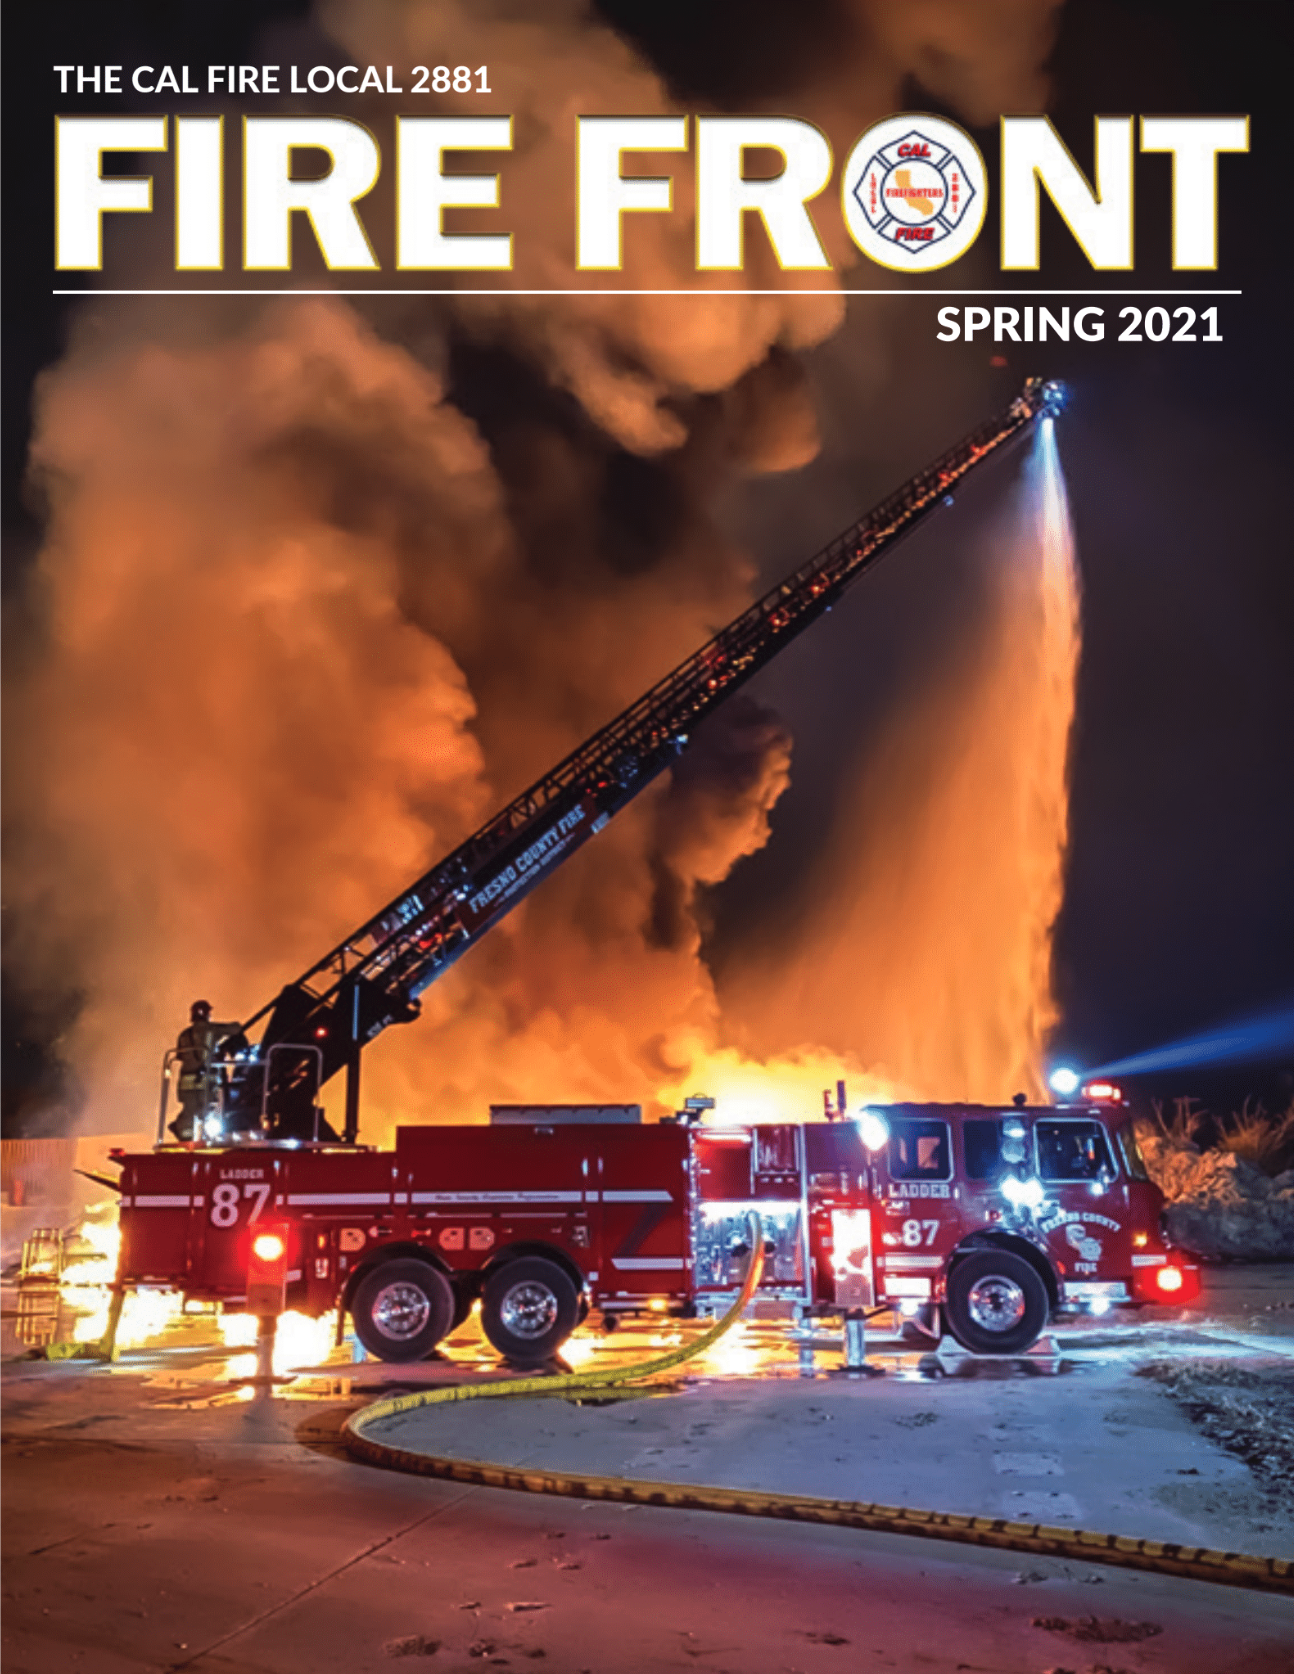 Fire Front Spring 2021